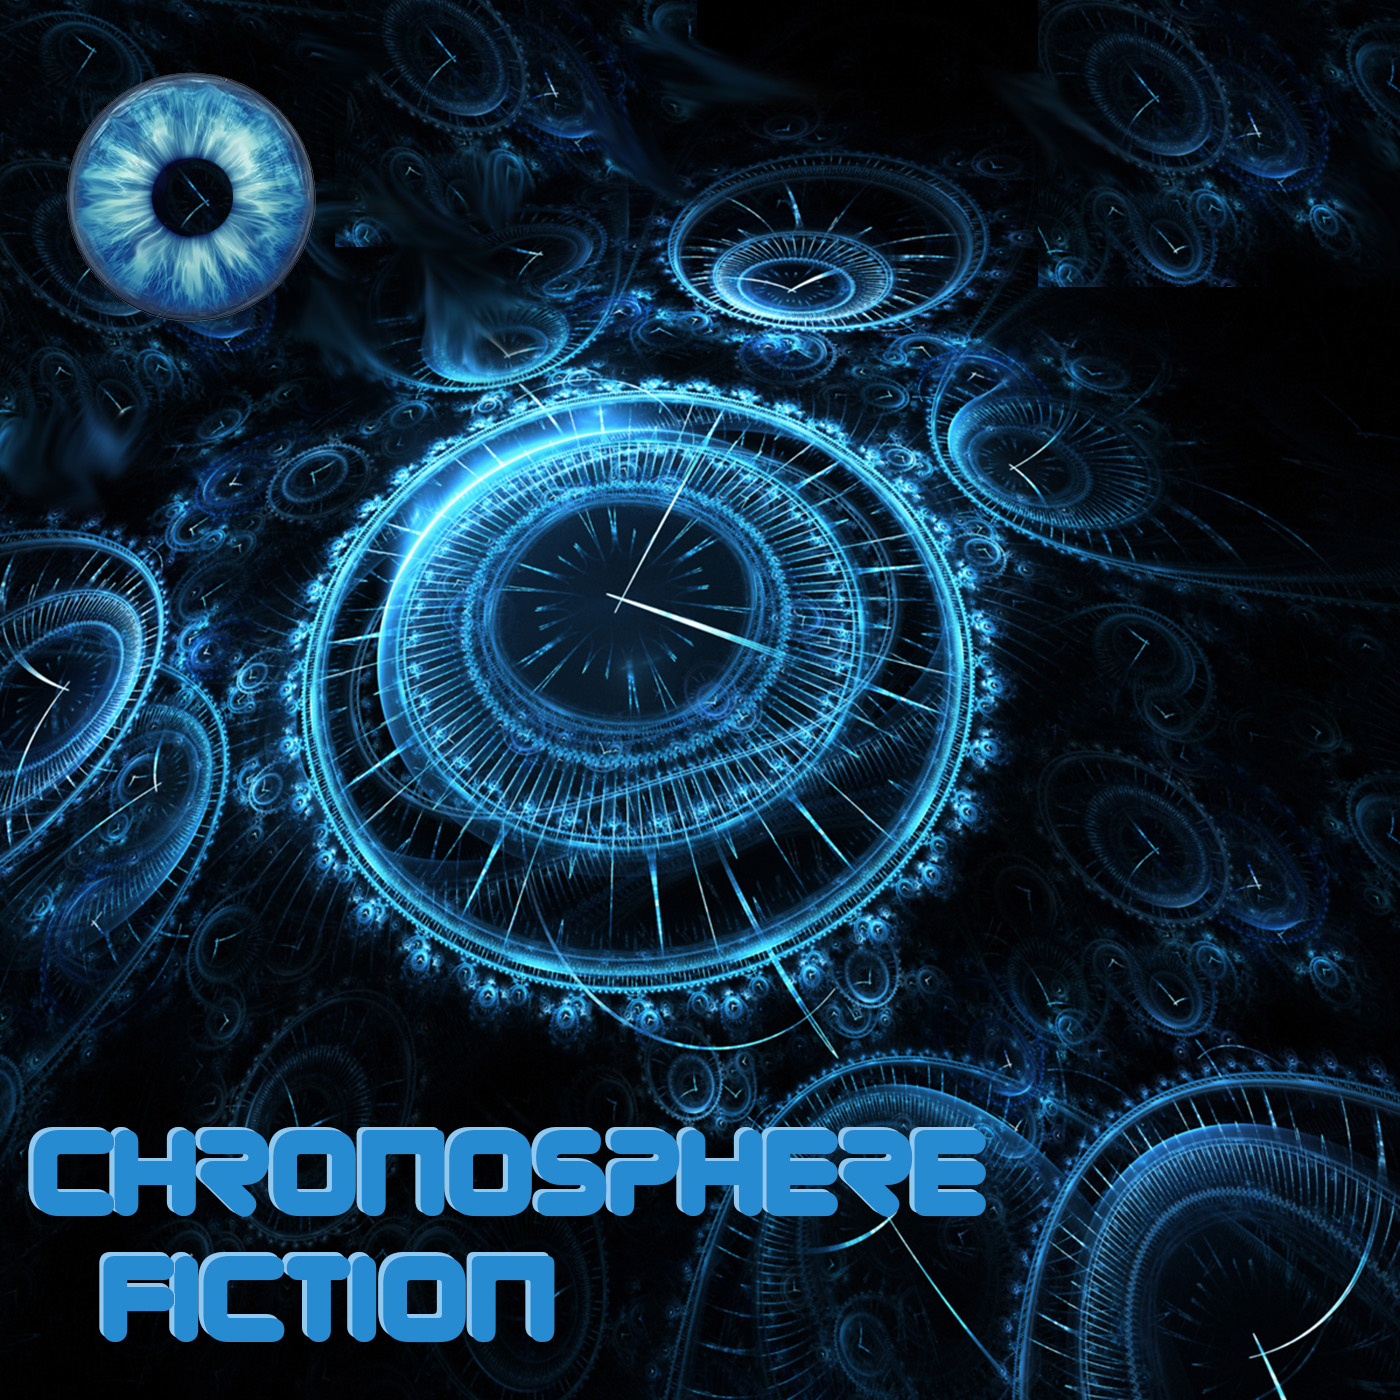 Chronosphere Fiction